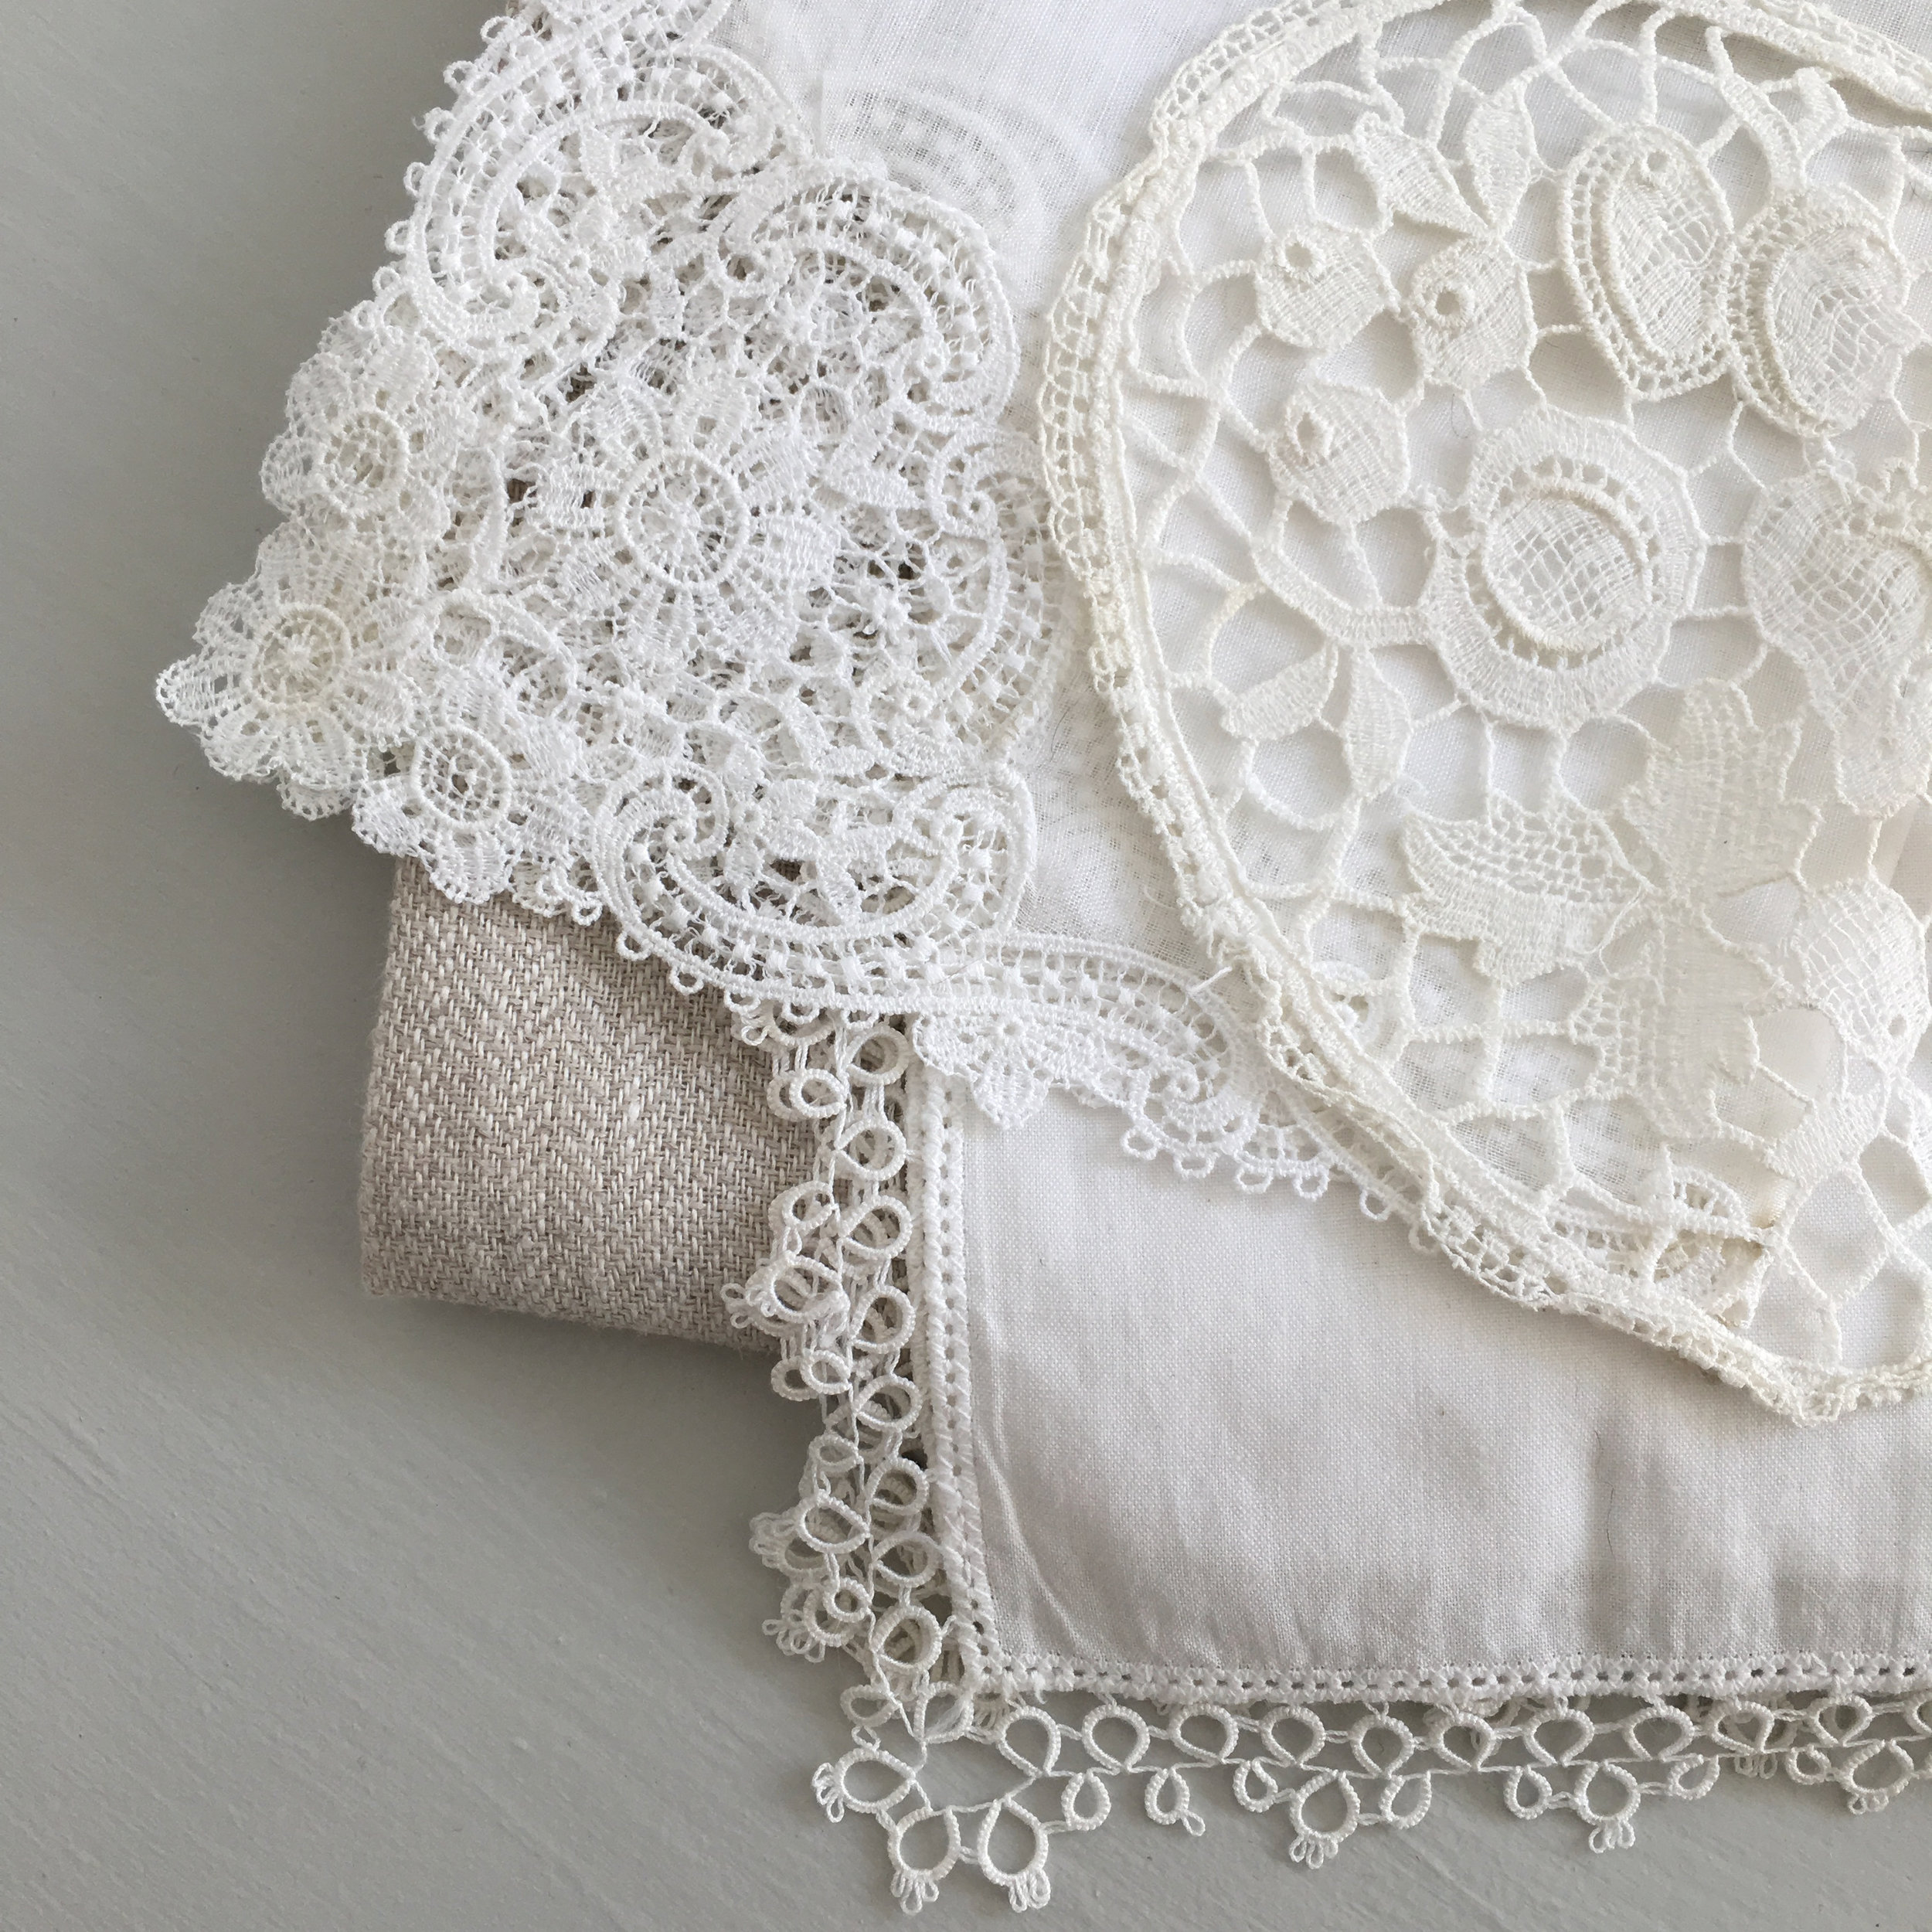 I will stop for any pile of French handwoven linens and antique lace. I know there will be a project one day for each and every found textile.